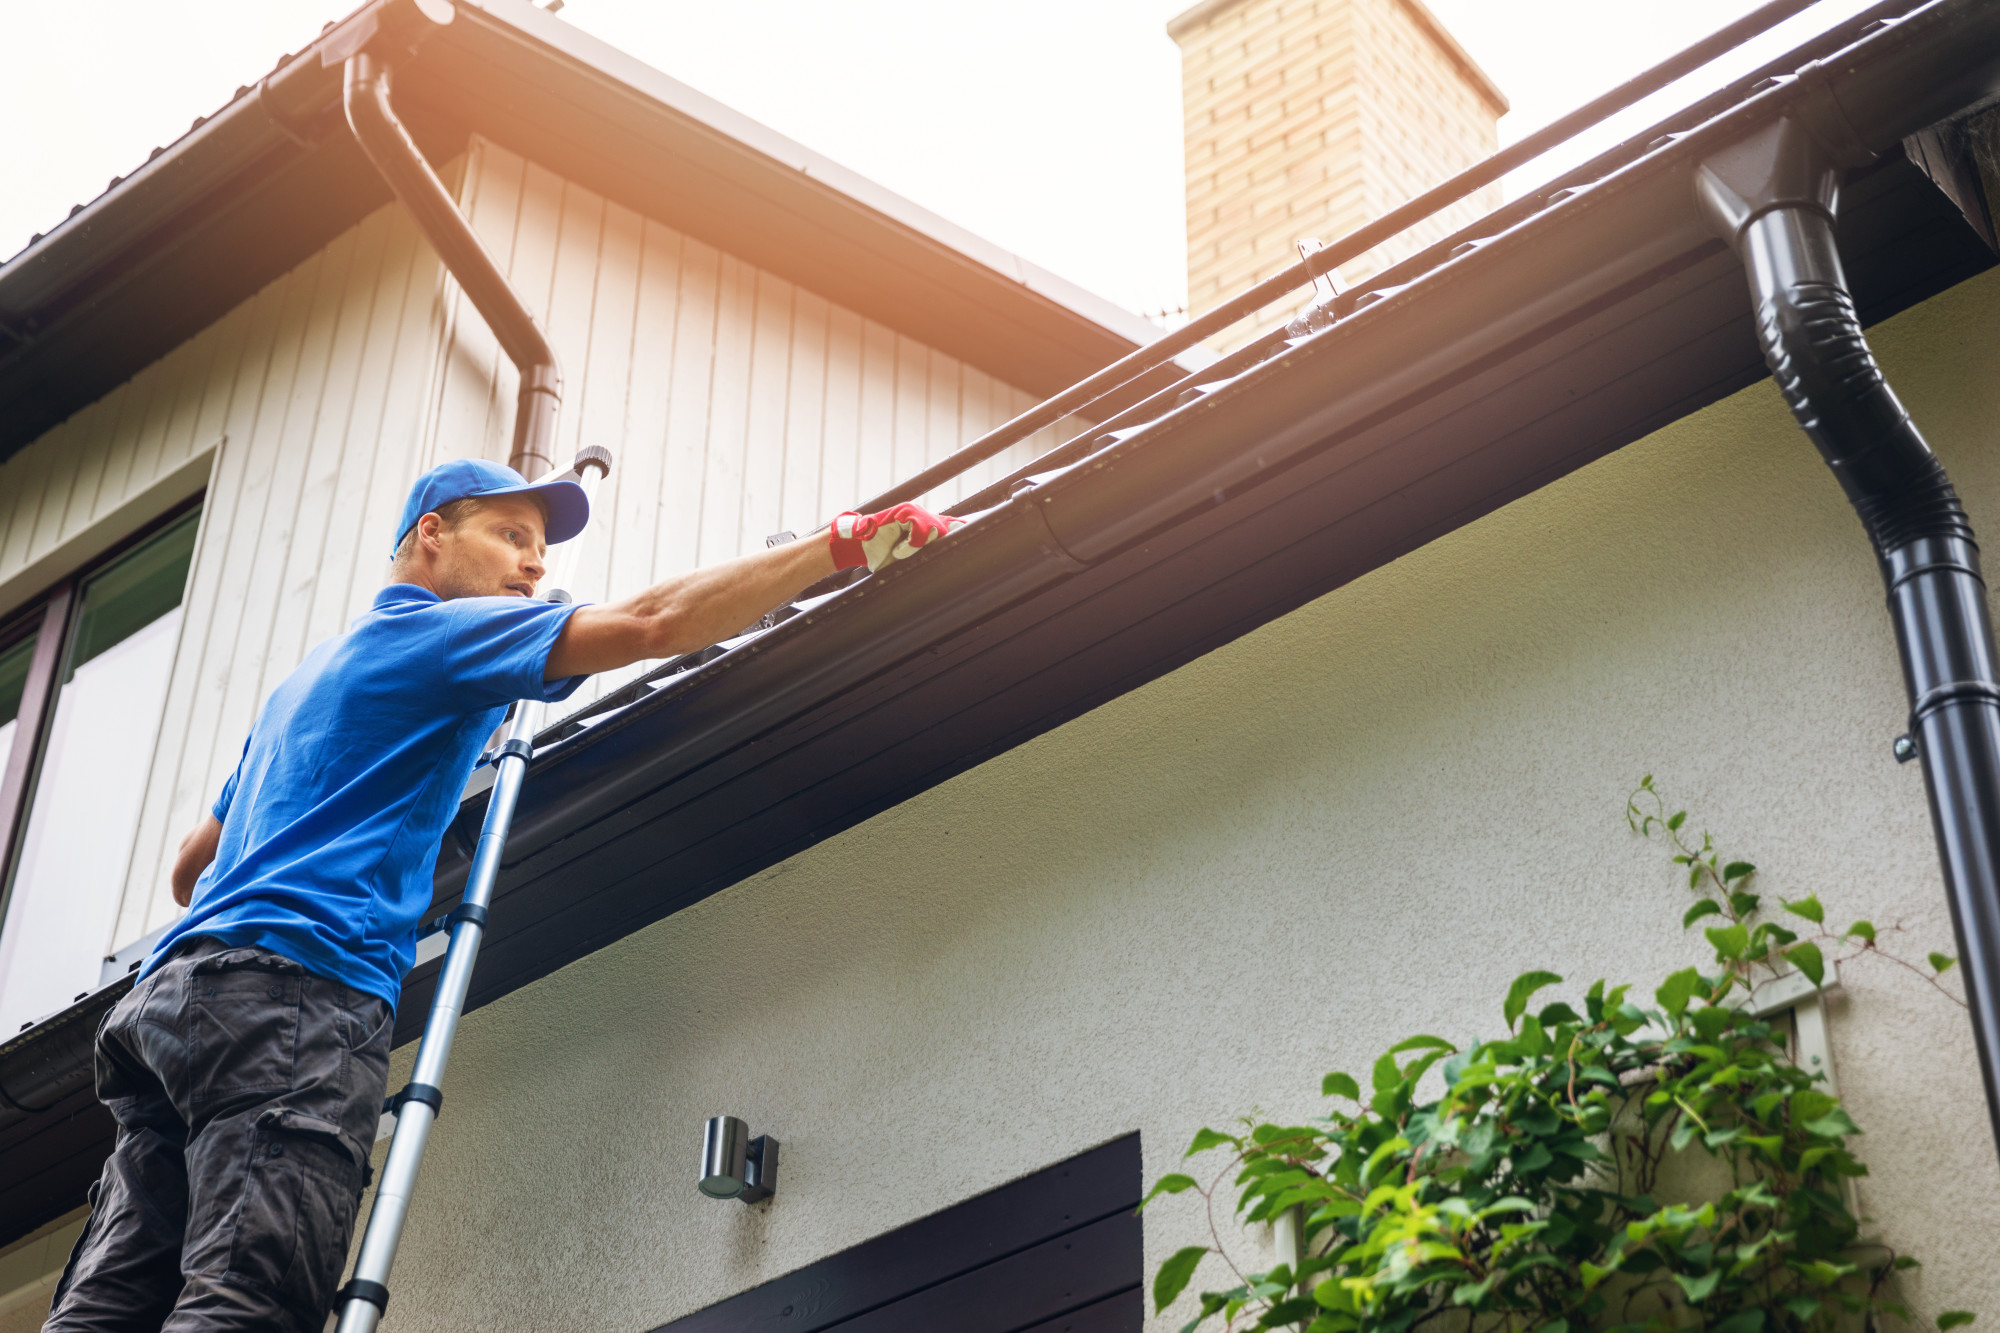 5 Helpful Tips on DIY Gutter Cleaning Without a Ladder